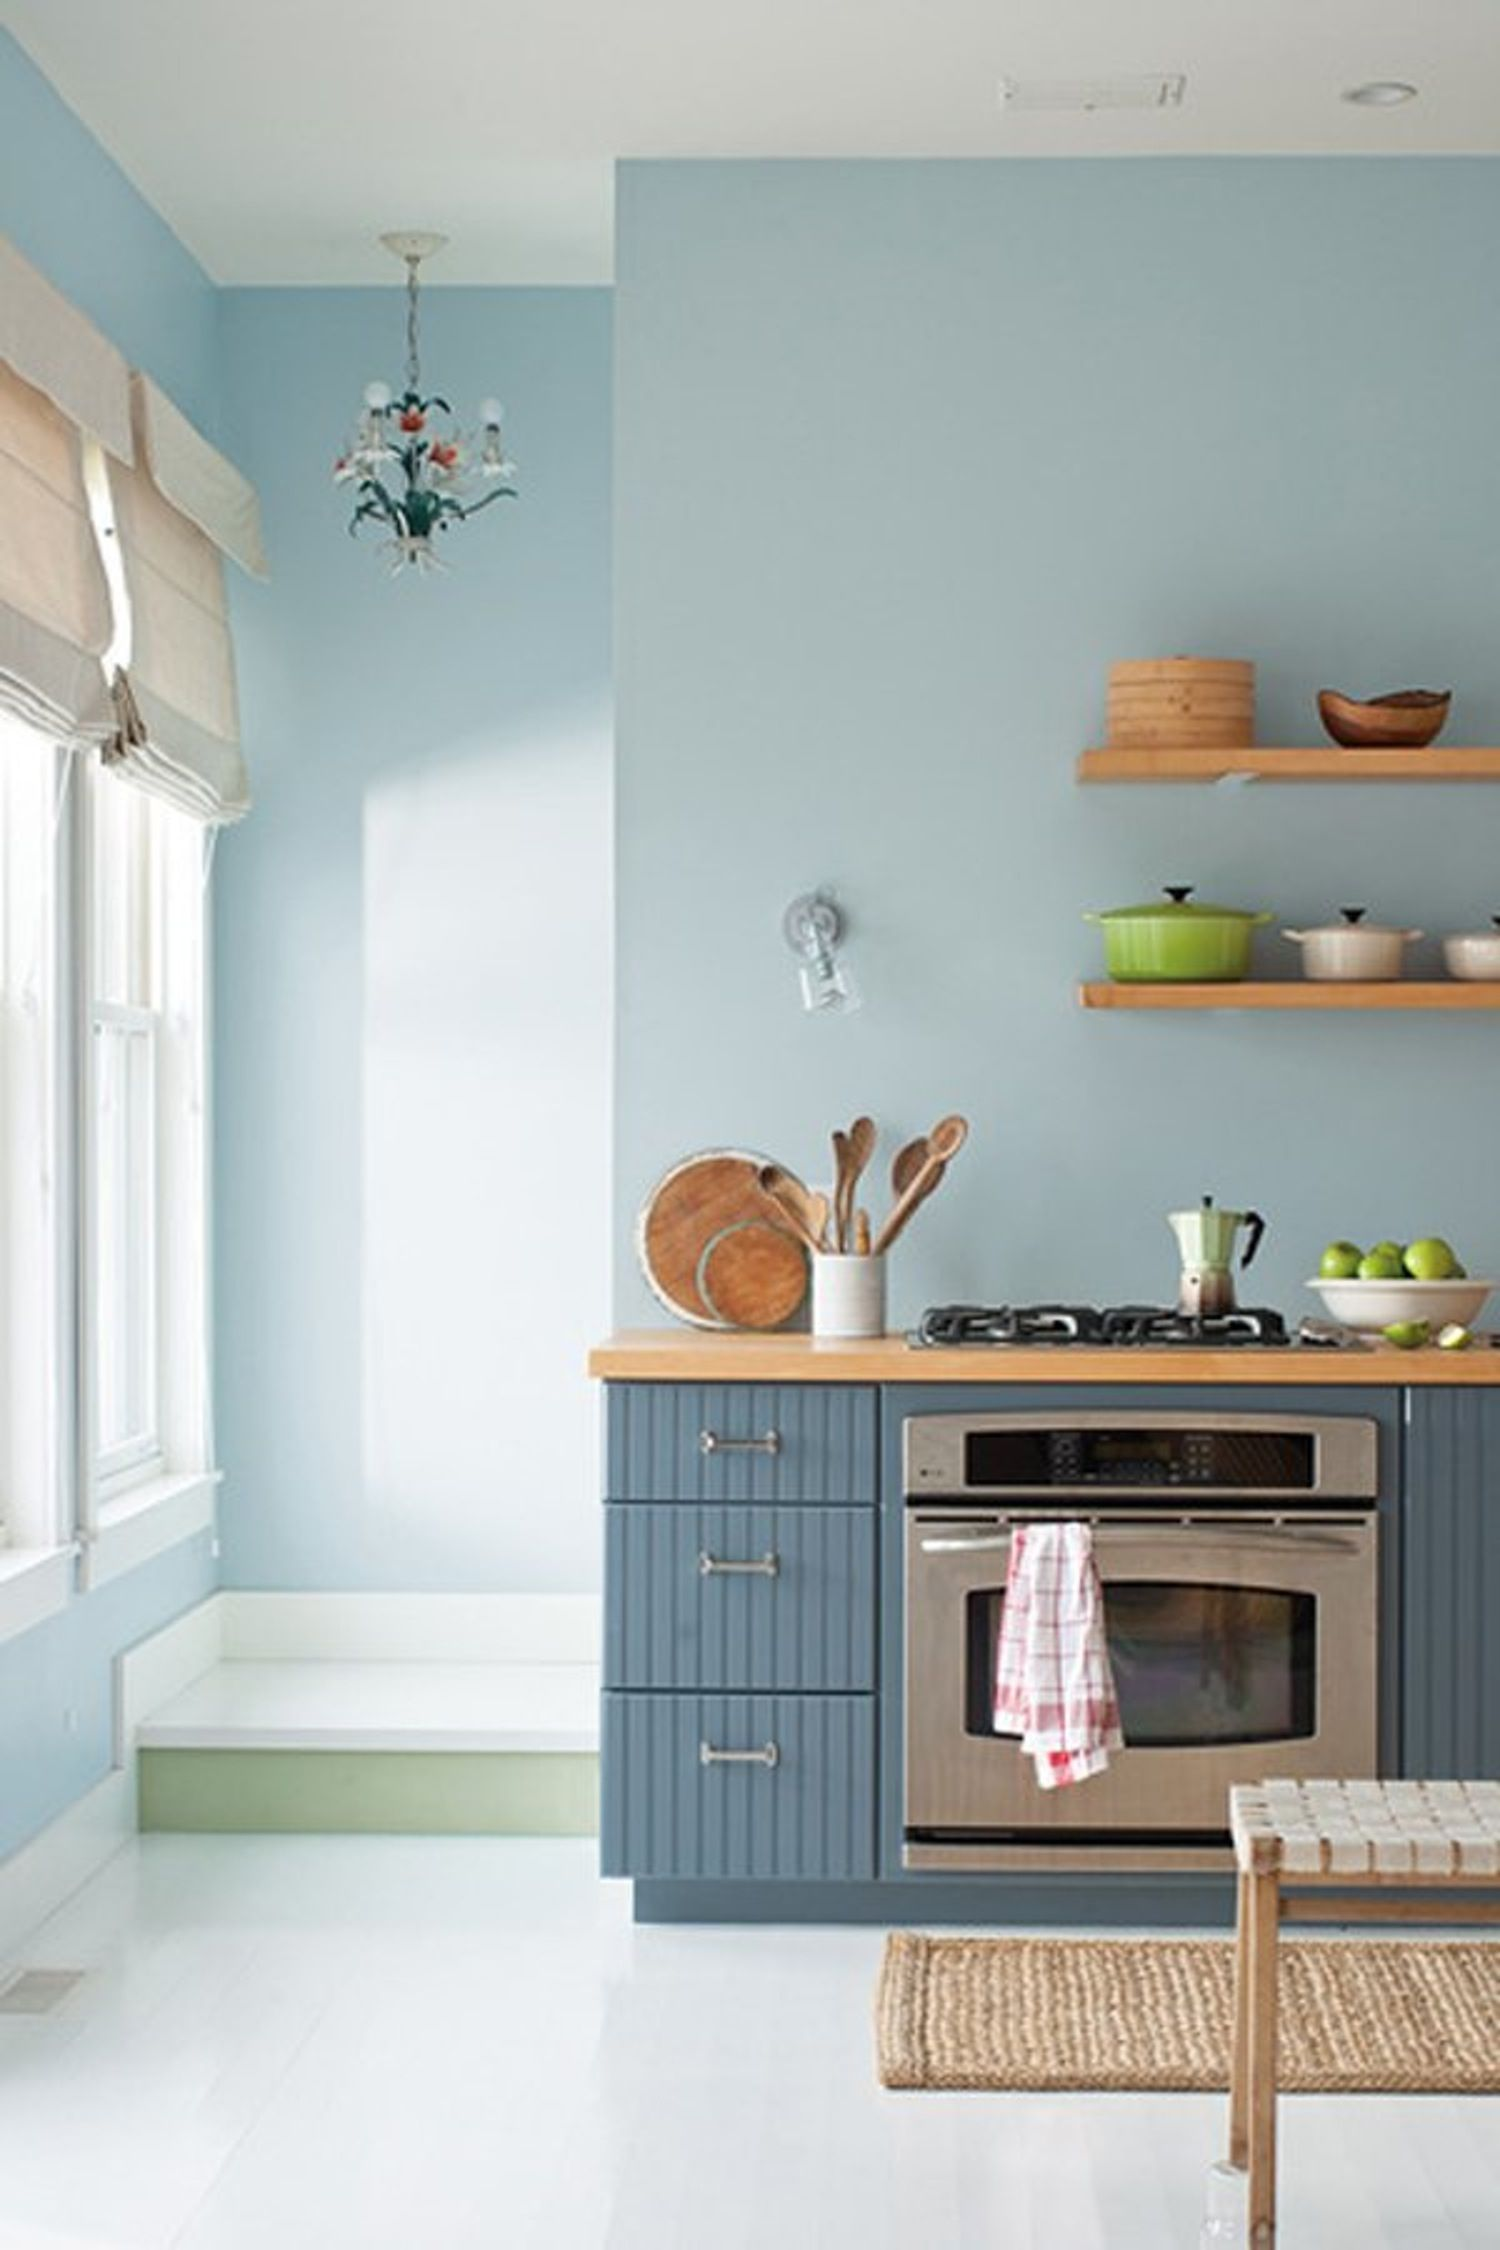 The Best Paint for Transforming Your Kitchen Cabinets | Pinterest ...